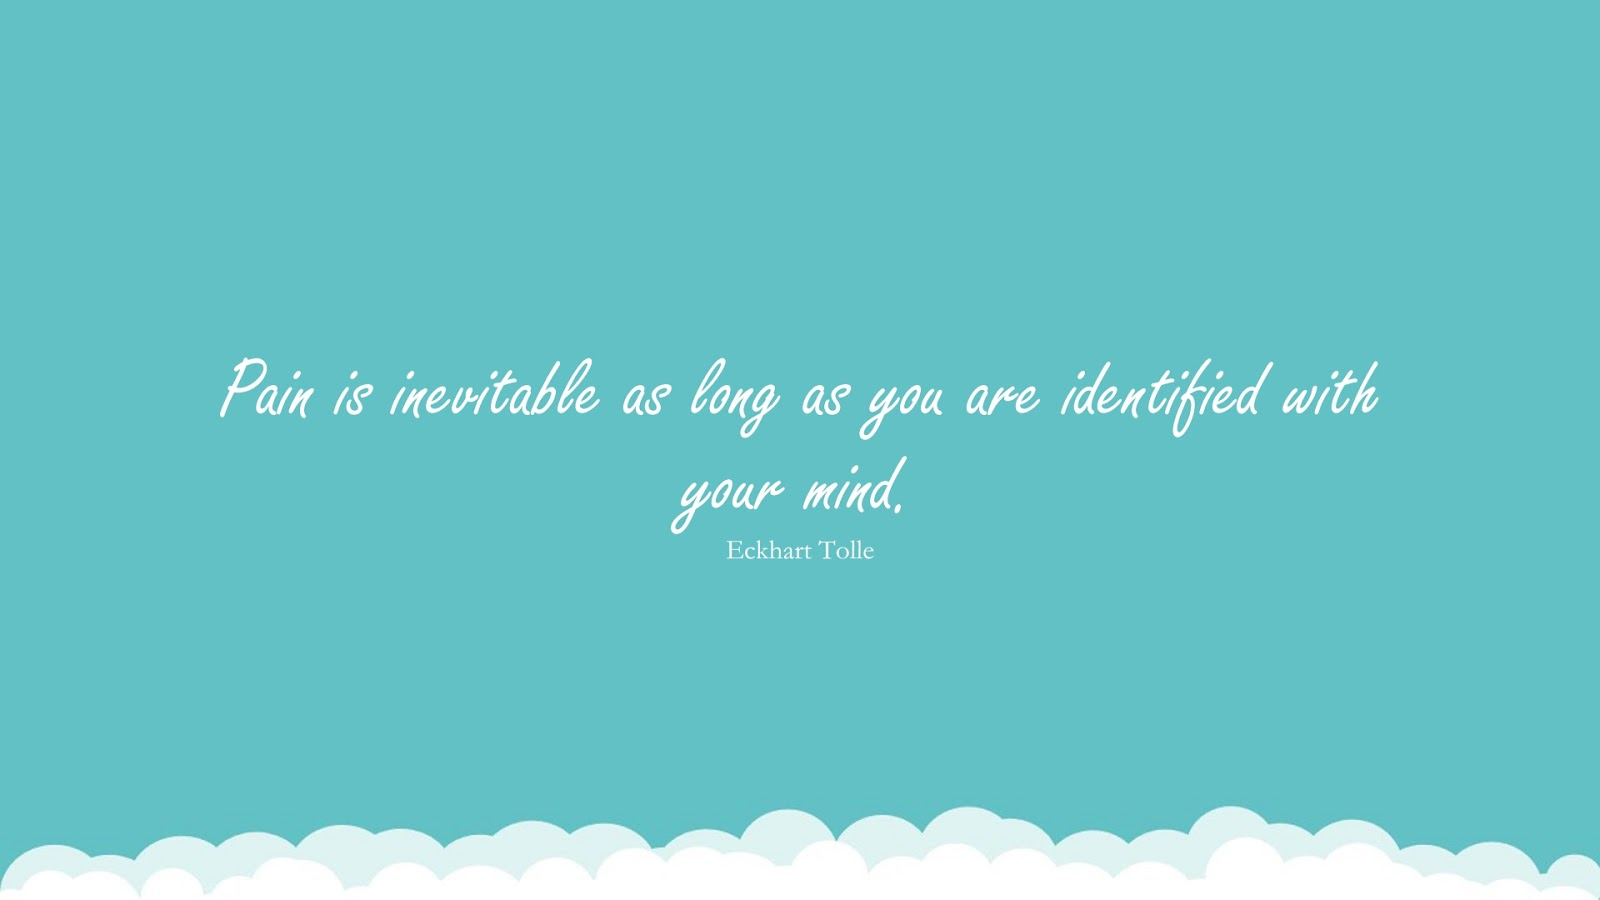 Pain is inevitable as long as you are identified with your mind. (Eckhart Tolle);  #DepressionQuotes